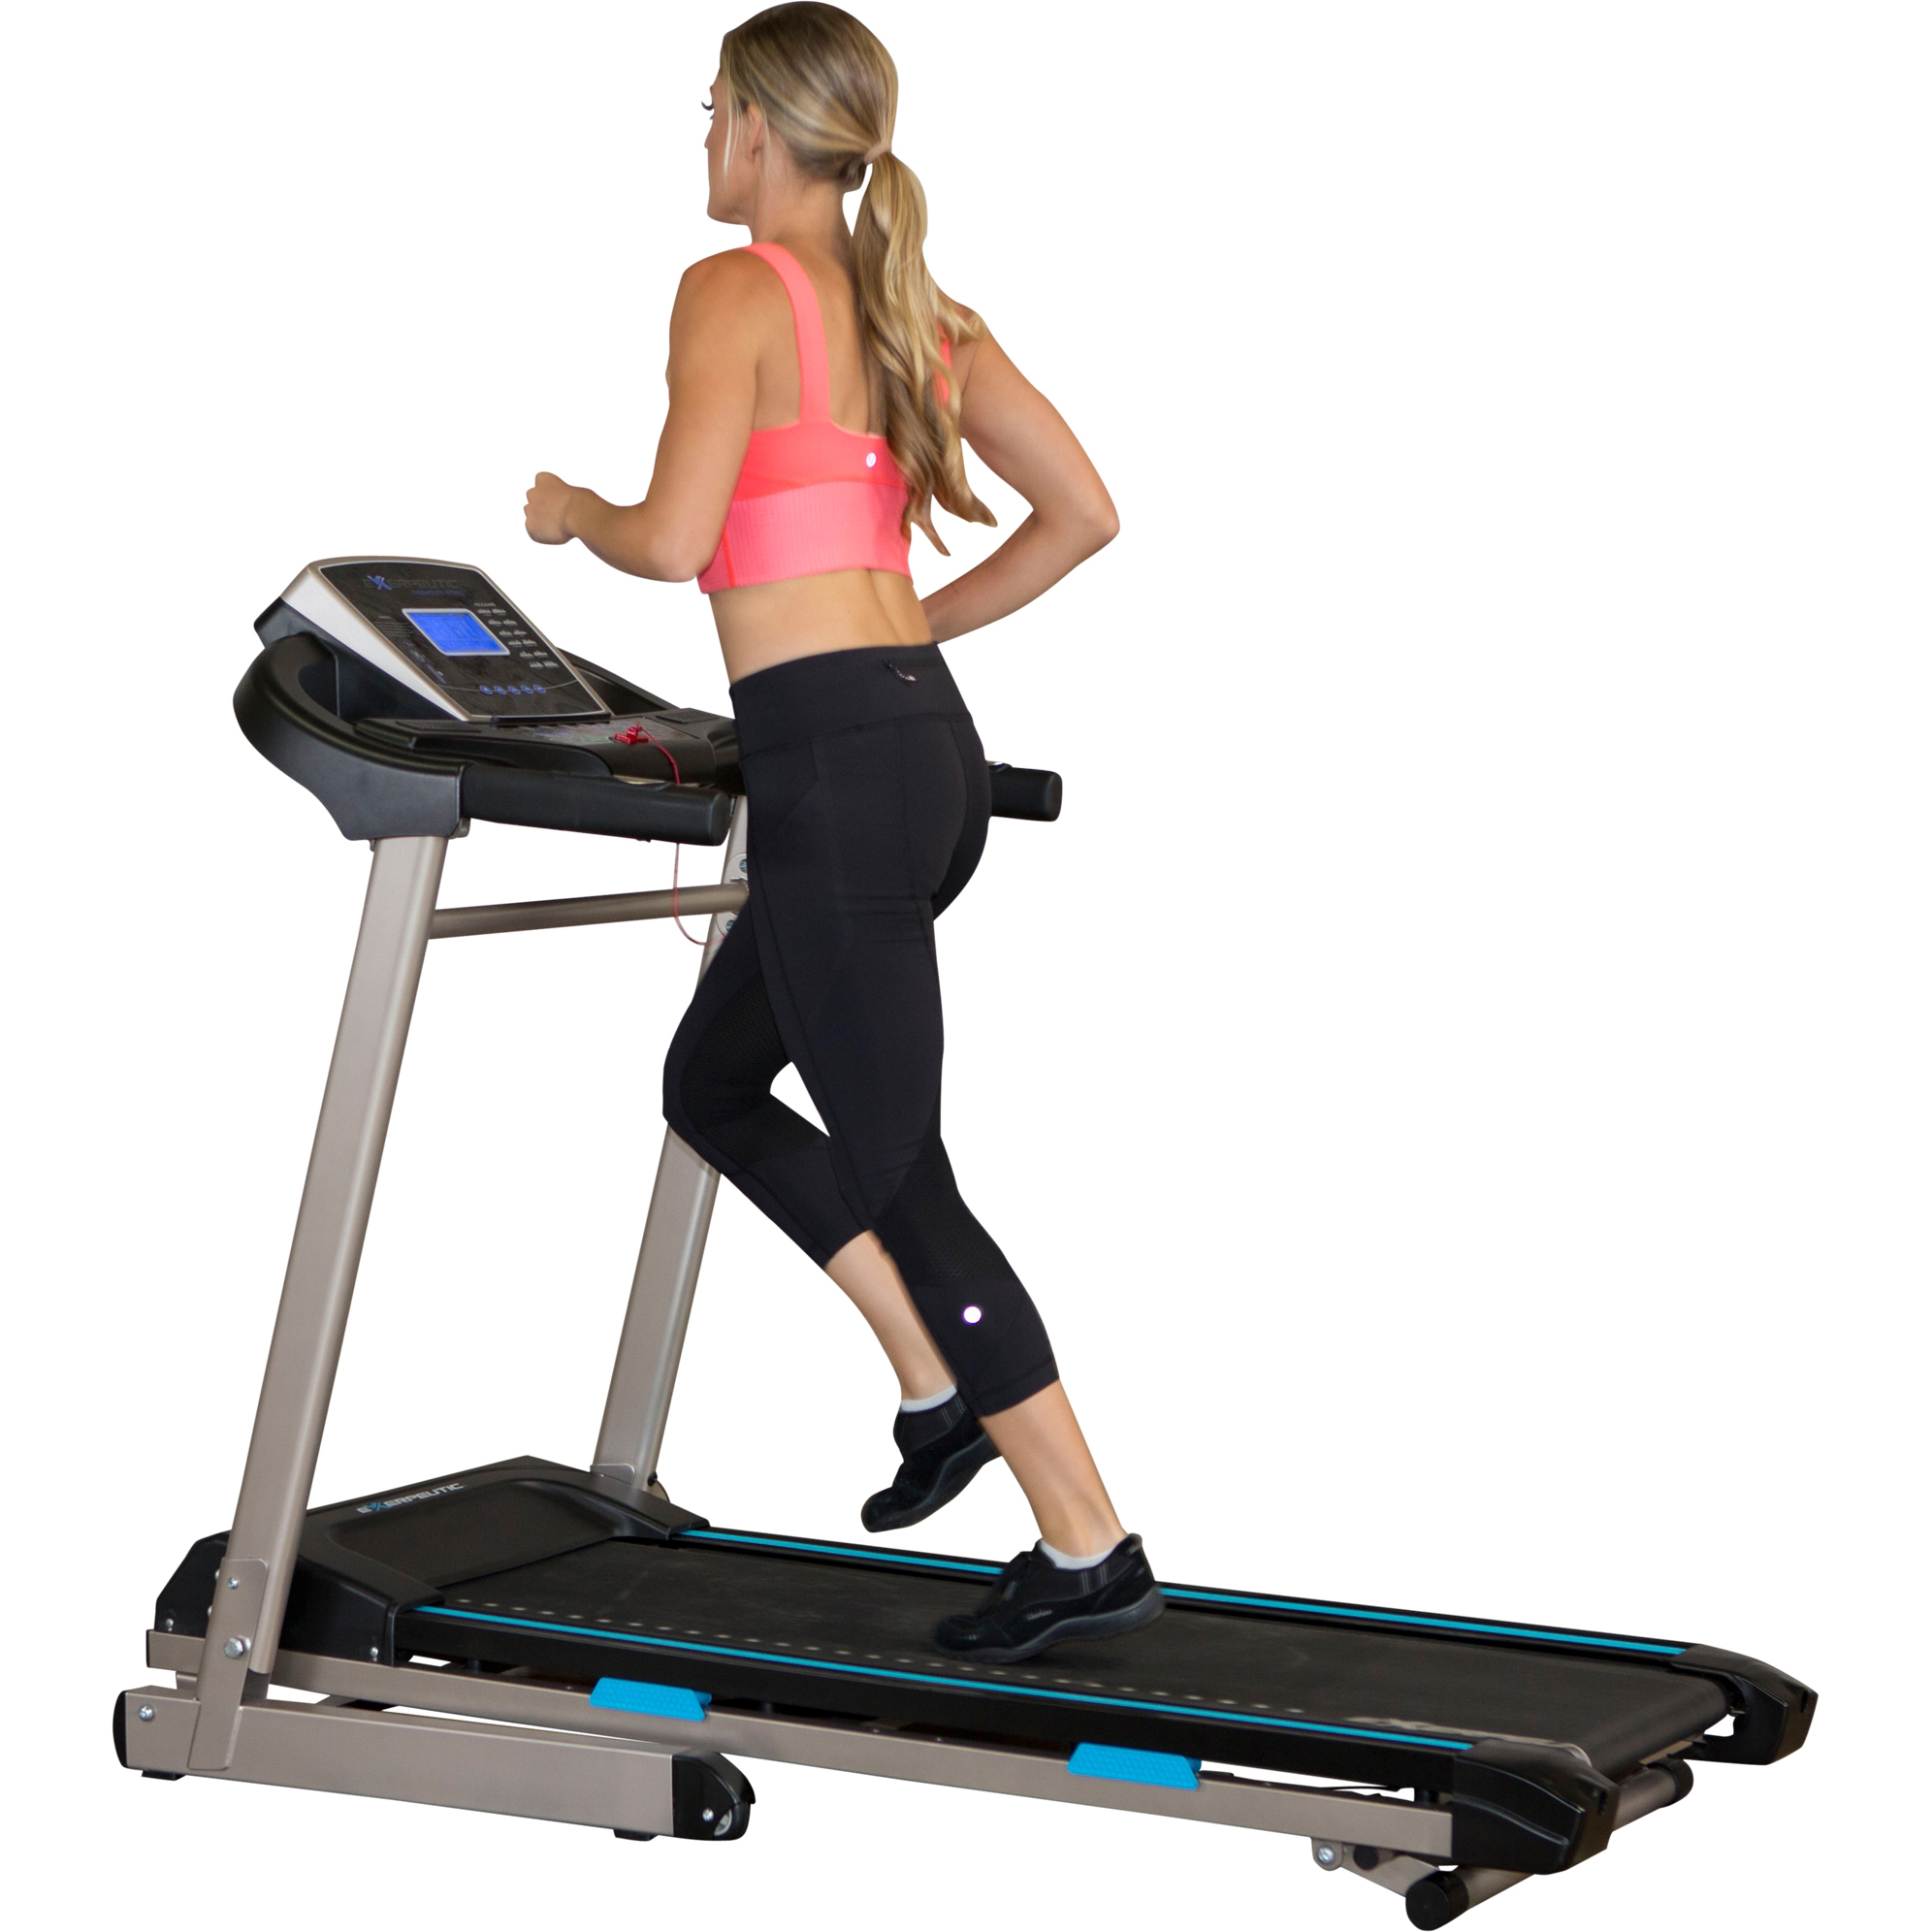 EXERPEUTIC TF3000 Bluetooth Smart Technology Electric Foldable Treadmill with Free App and Extended Belt Size by Paradigm Health & Wellness